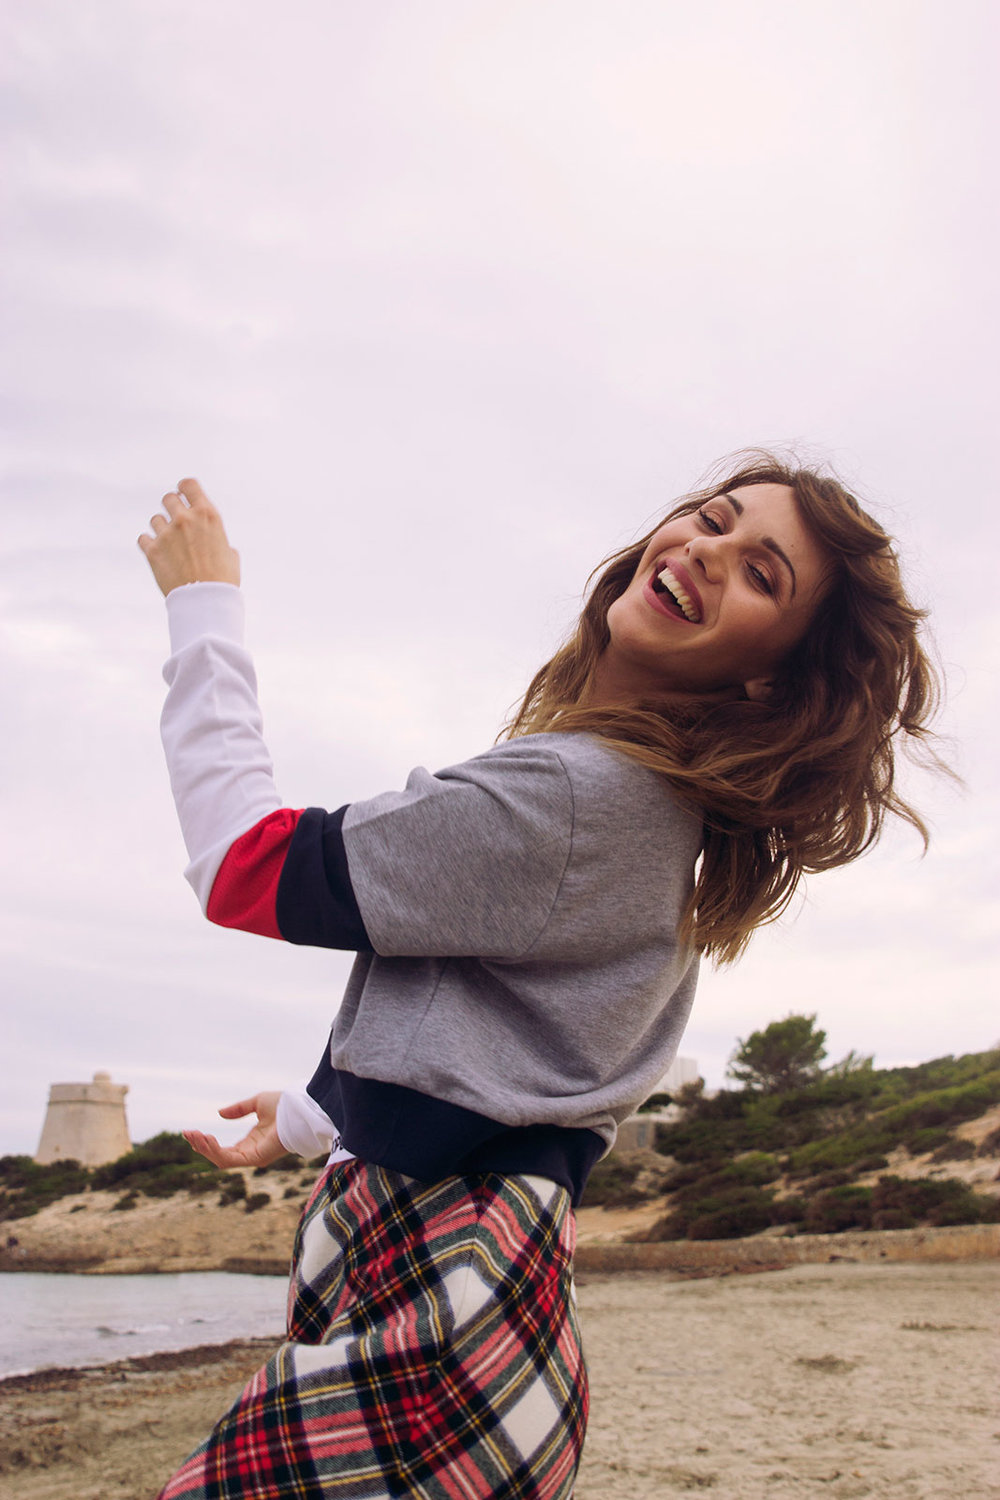 model laughing on sandy beach